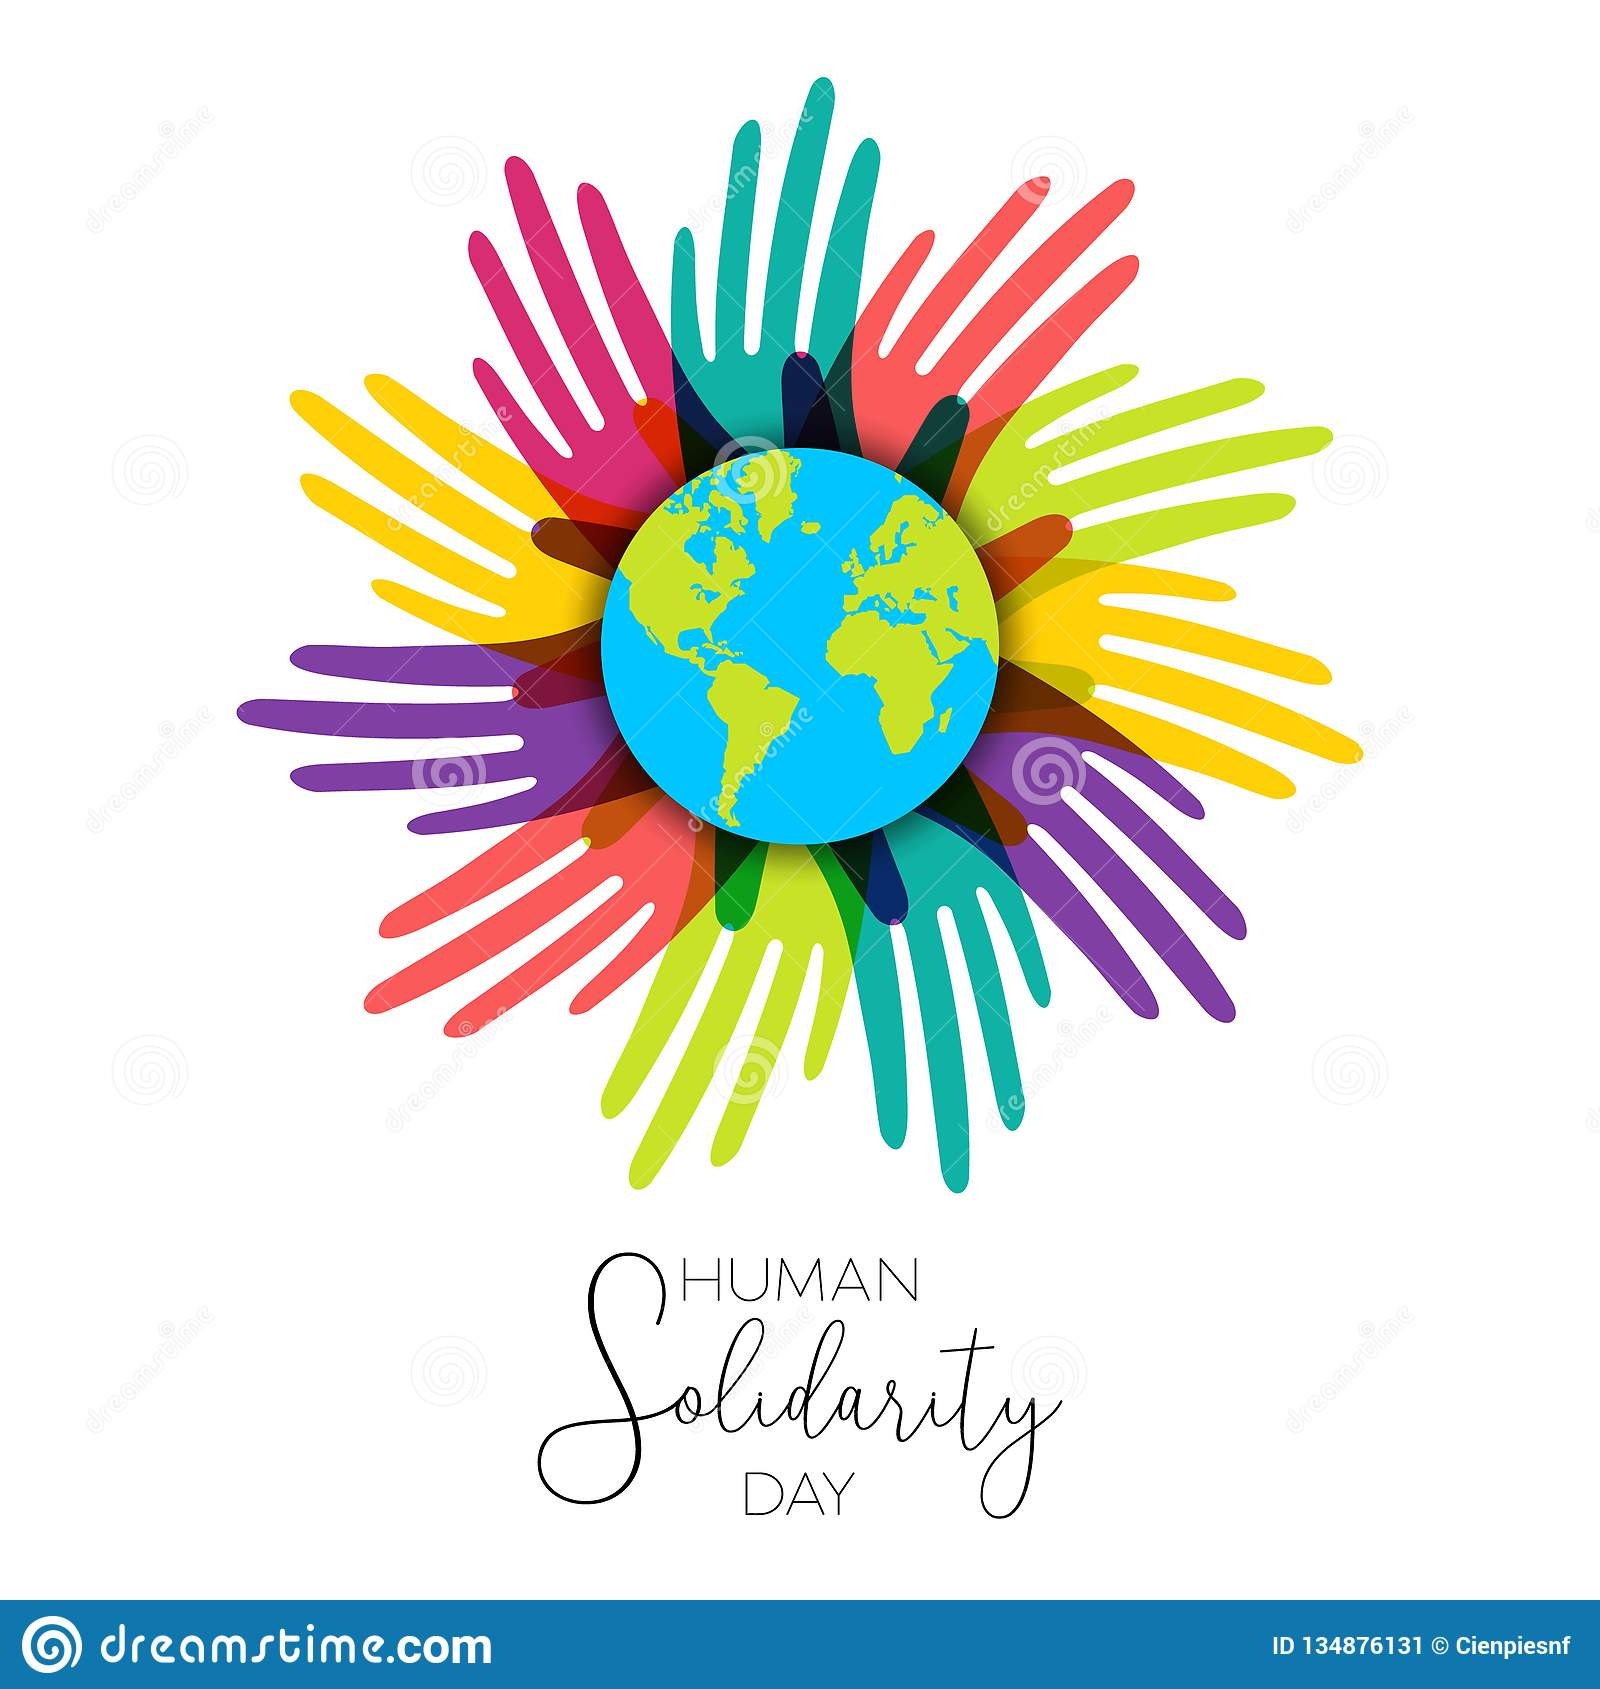 814cb39679f2 International Human Solidarity Day illustration with colorful hands around  the world from different cultures helping each other for community help